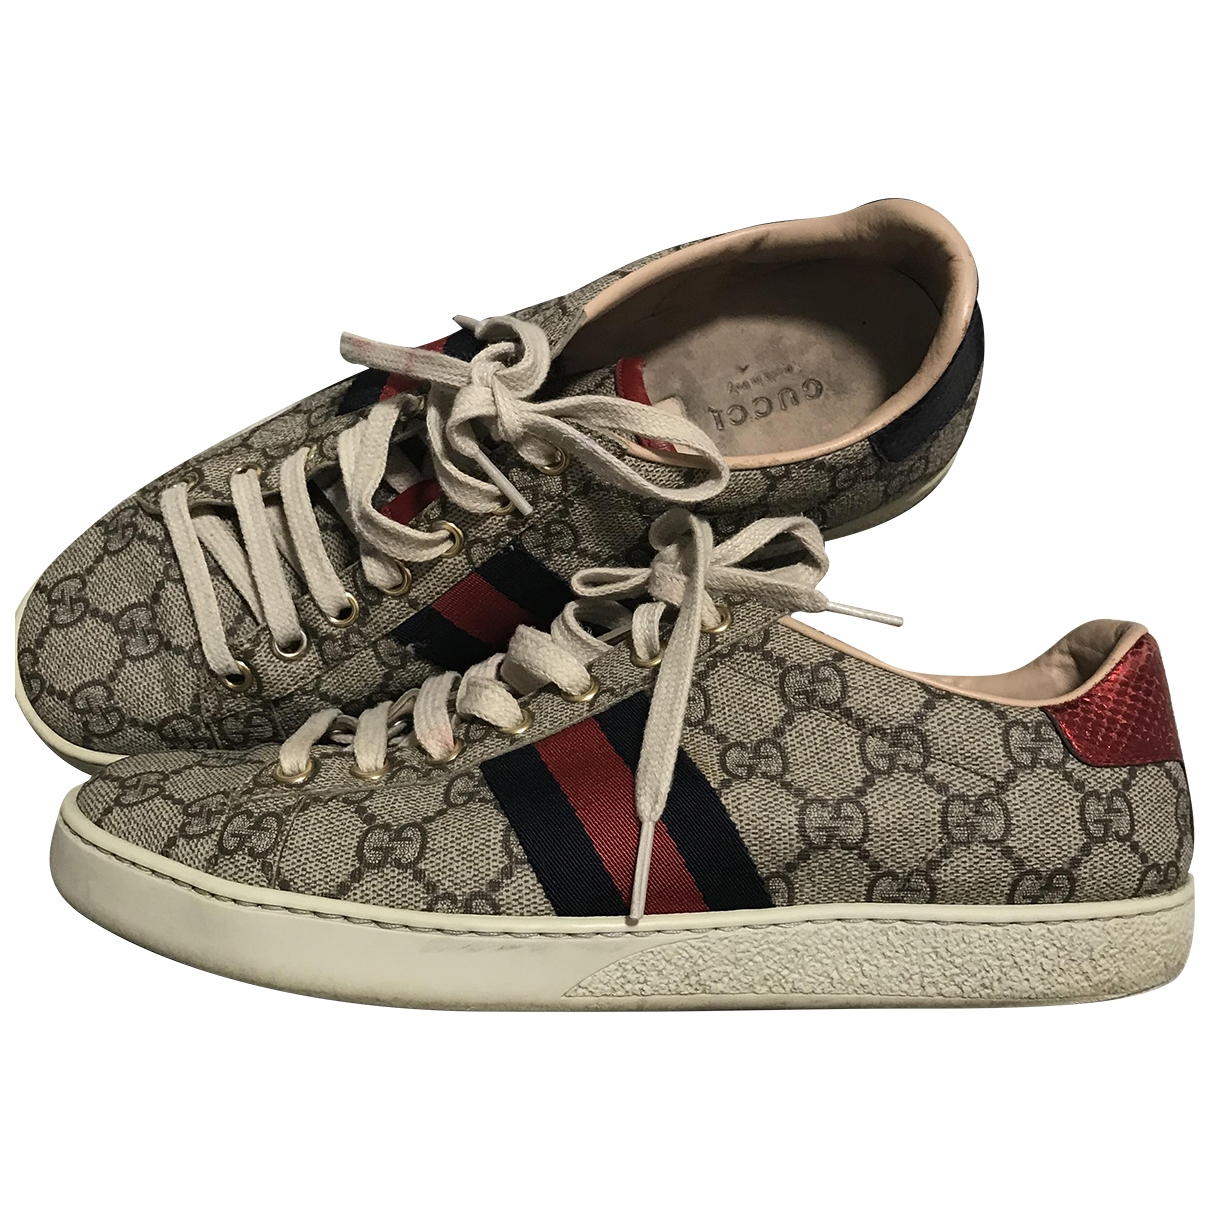 Gucci Ace Beige Leather Trainers for Women 39 EU